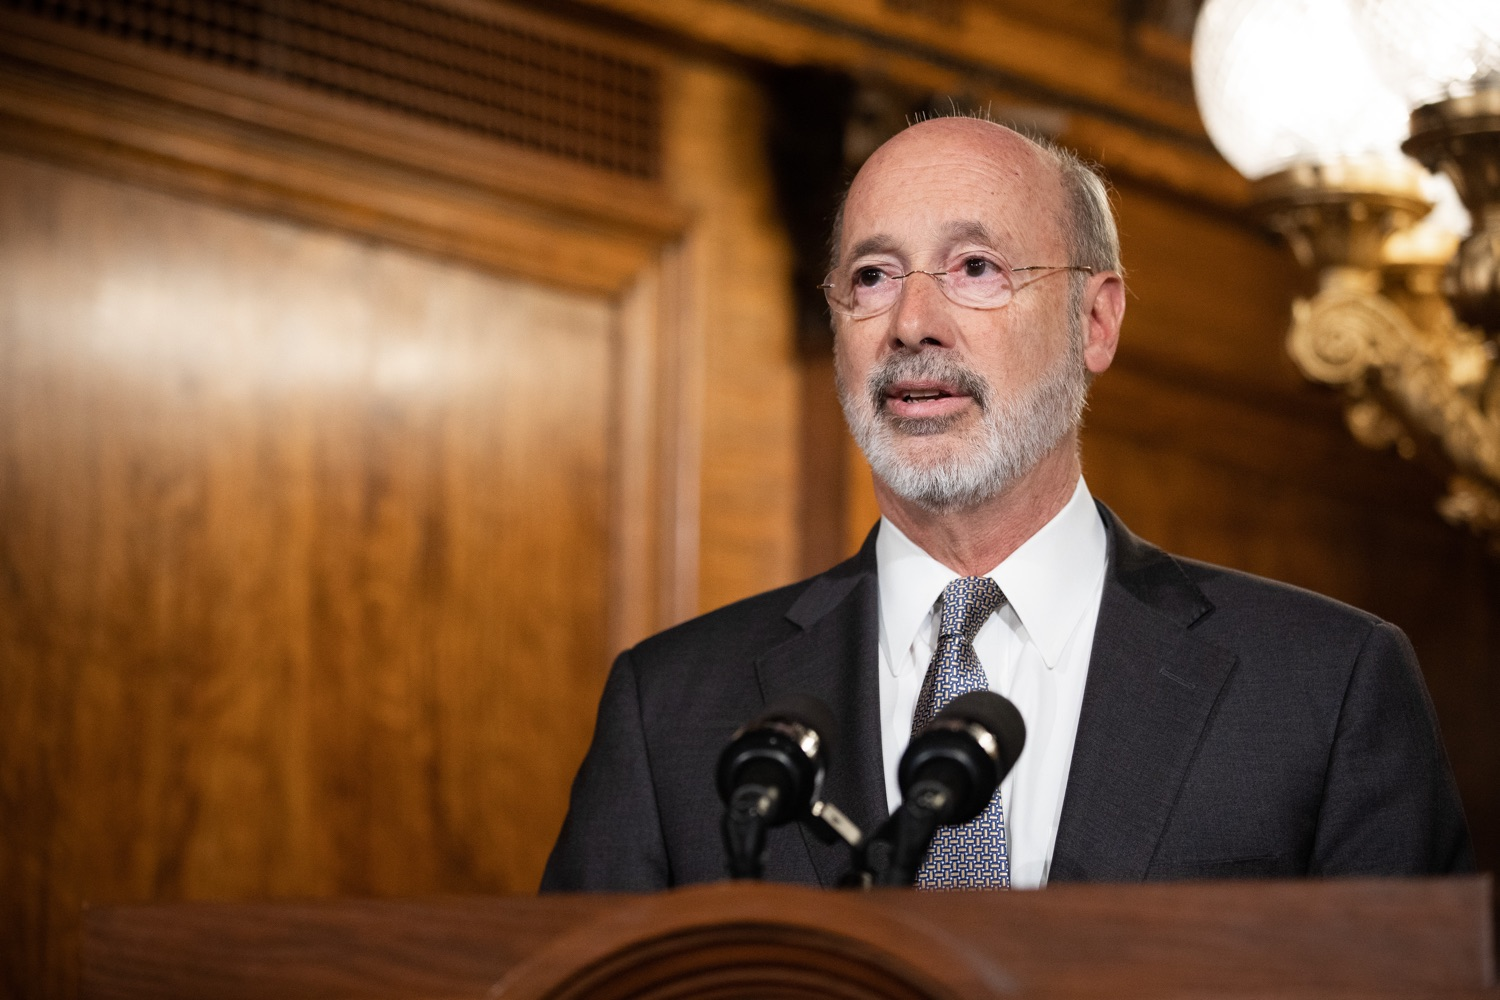 "<a href=""https://filesource.wostreaming.net/commonwealthofpa/photo/17554_gov_voter_reform_bill_dz_006.jpg"" target=""_blank"">⇣ Download Photo<br></a>Harrisburg, PA  Governor Tom Wolf speaks at the Election Reform Bill signing. Governor Wolf made voting more convenient and secure by signing Act 77 of 2019, the most significant improvement to Pennsylvanias elections in more than 80 years. The bipartisan compromise legislation takes effect for the April 2020 primary election and makes Pennsylvania a national leader with voter-friendly election reforms."